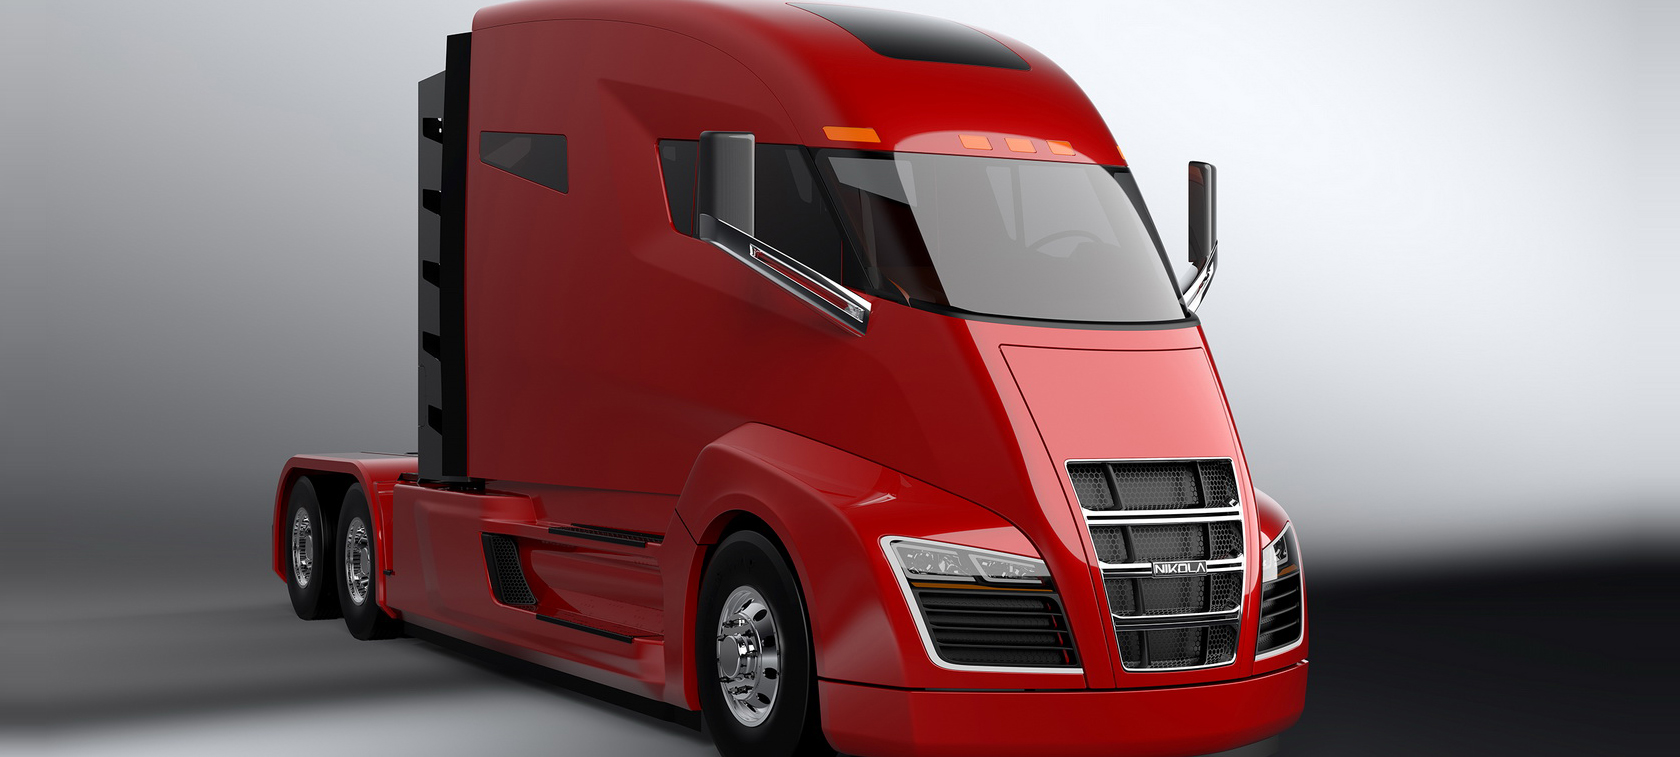 Nikola One a runaway success